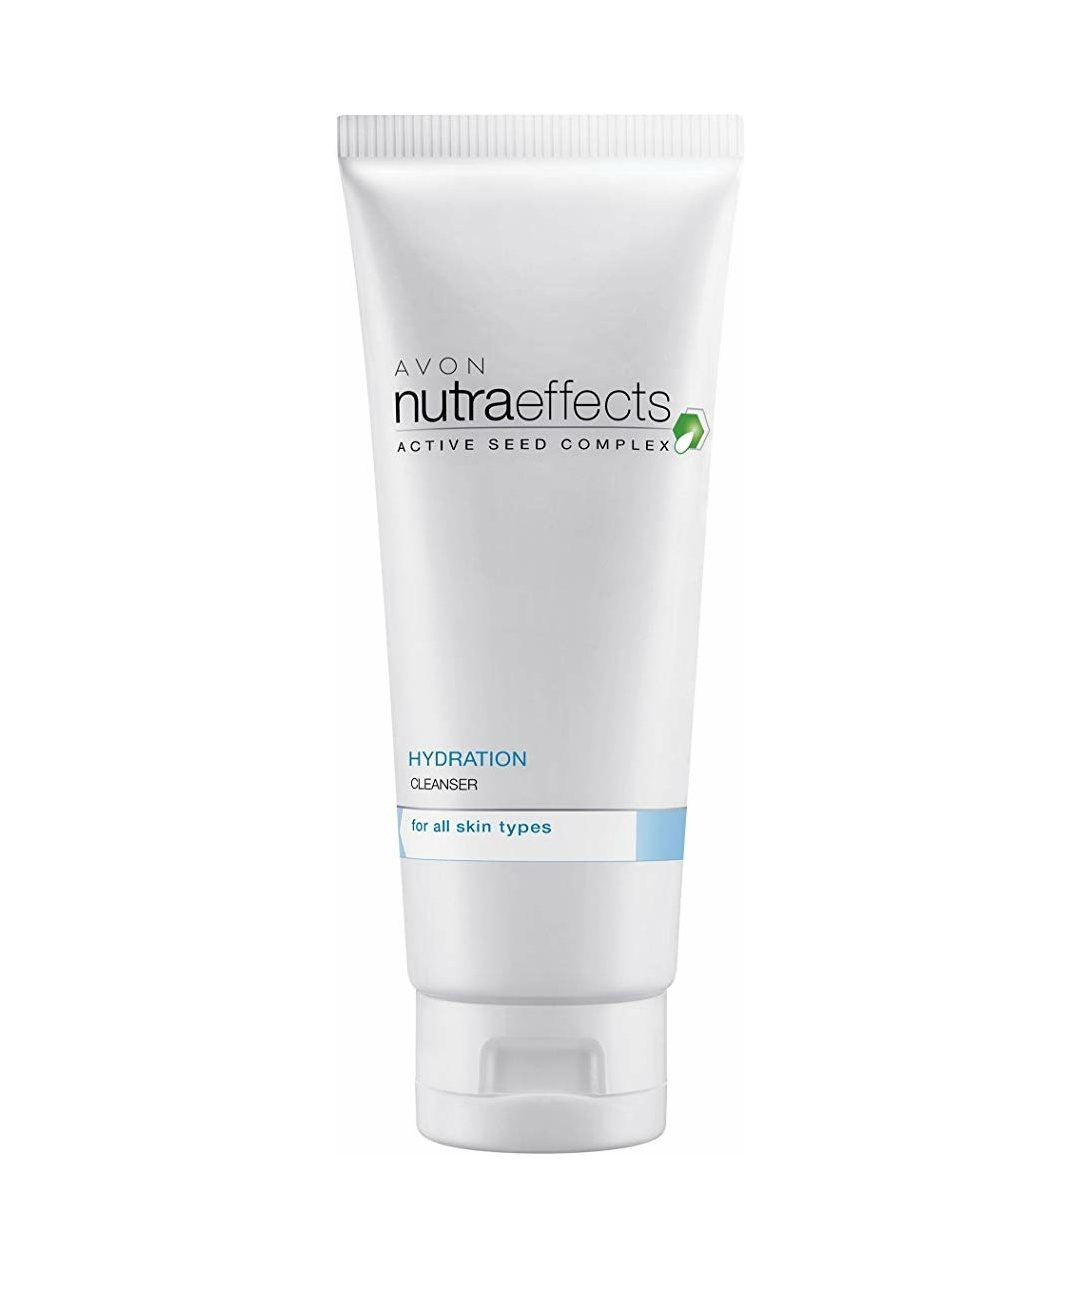 Avon Nutraeffects Hydration Cleanser